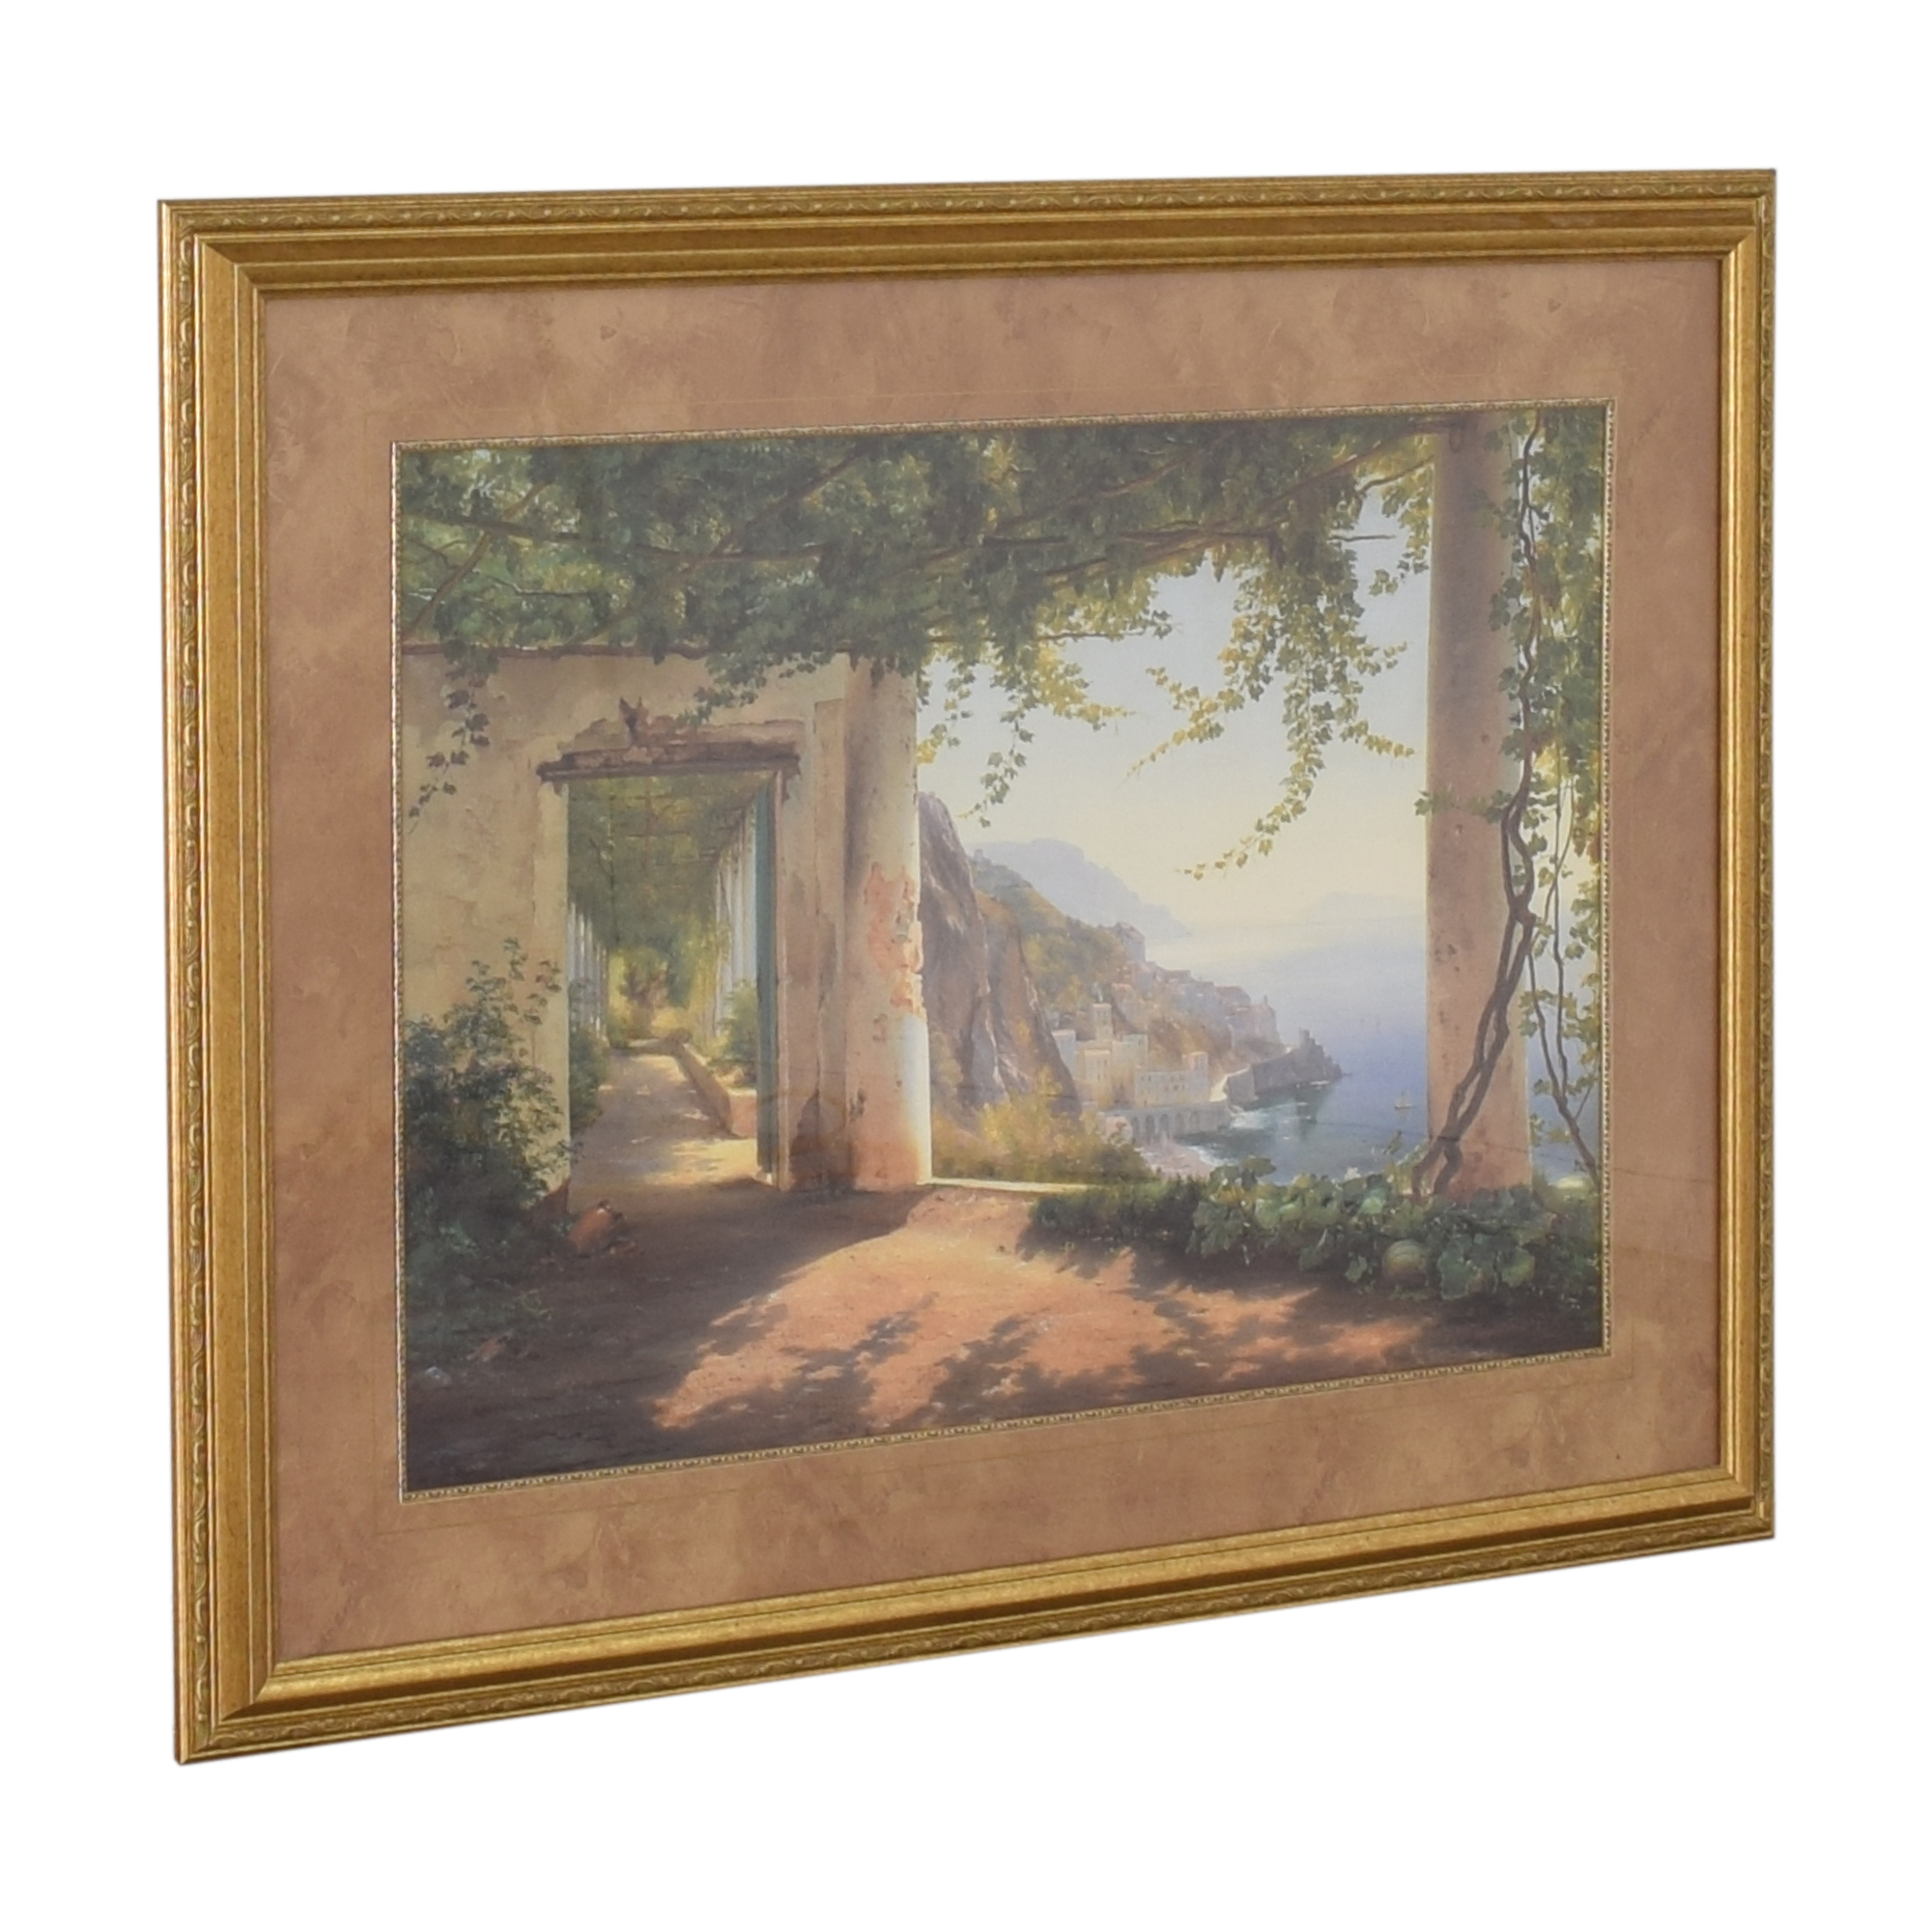 Ethan Allen Ethan Allen Amalfi Coast View Wall Art on sale